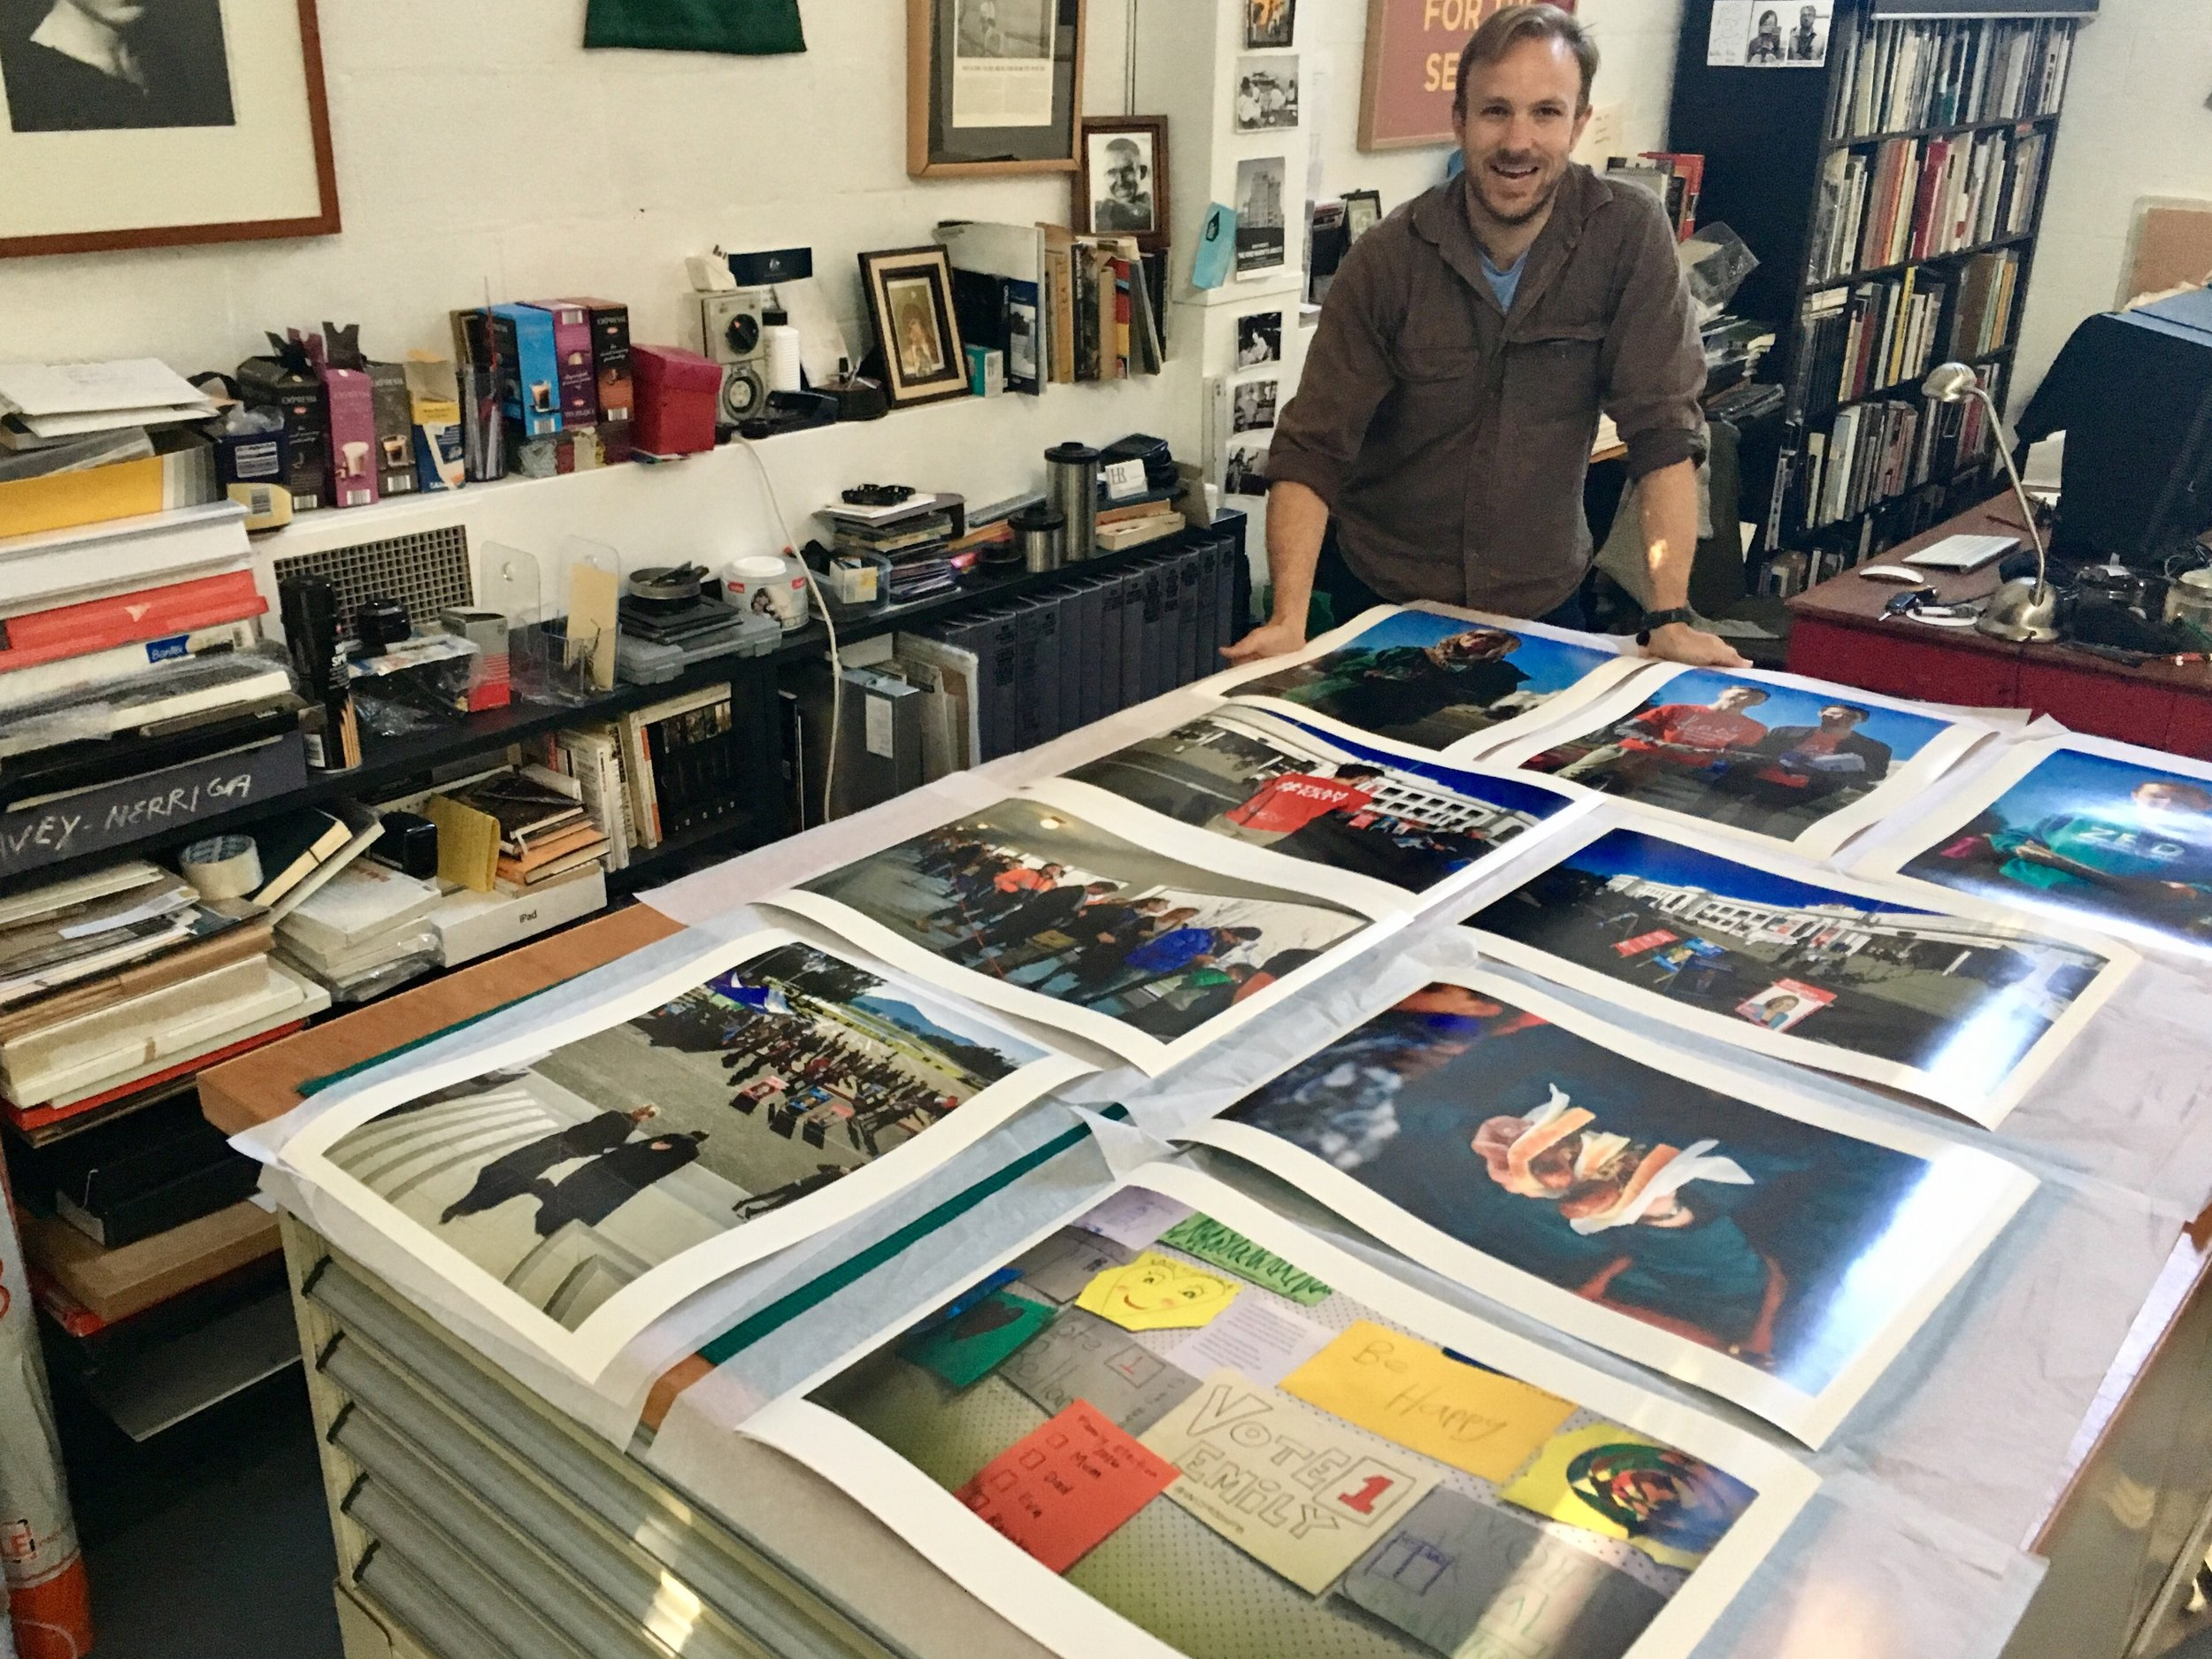 A selection of freshly printed photographs in my studio, destined for the collection of the National Library of Australia. Photo by Michael Cammack.